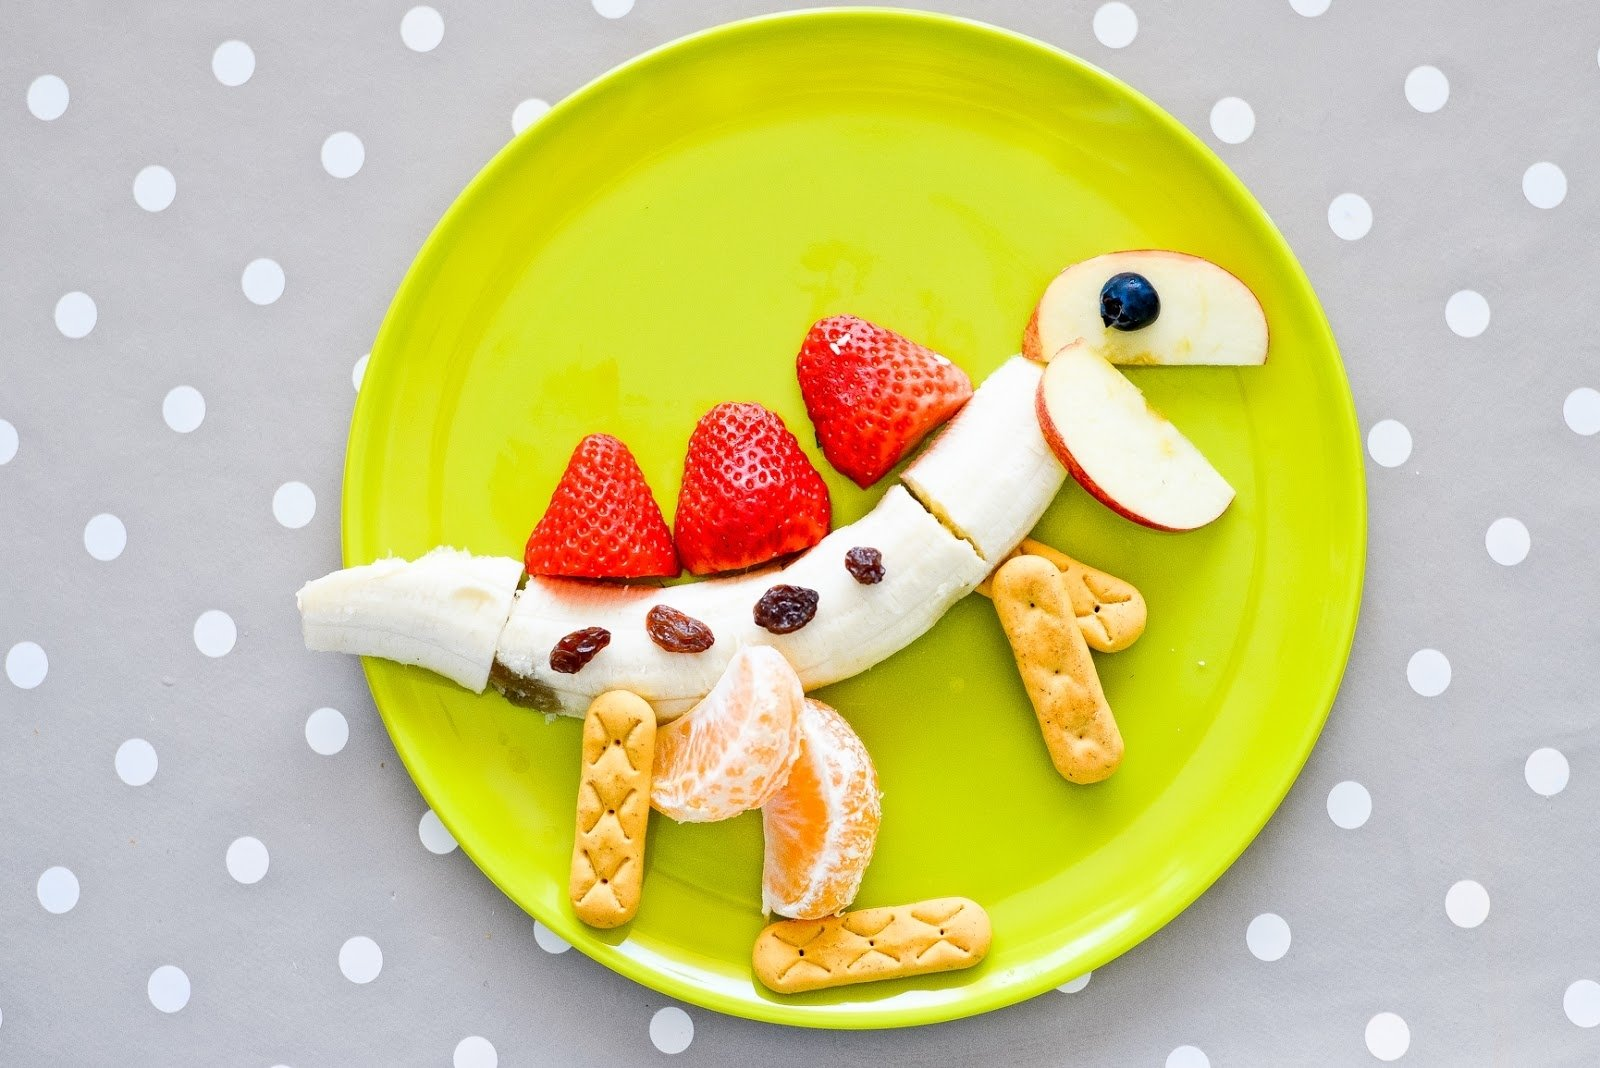 10 Famous Healthy Snack Ideas For Toddlers fun and healthy toddler snack ideas snackspiration bump to baby 1 2020